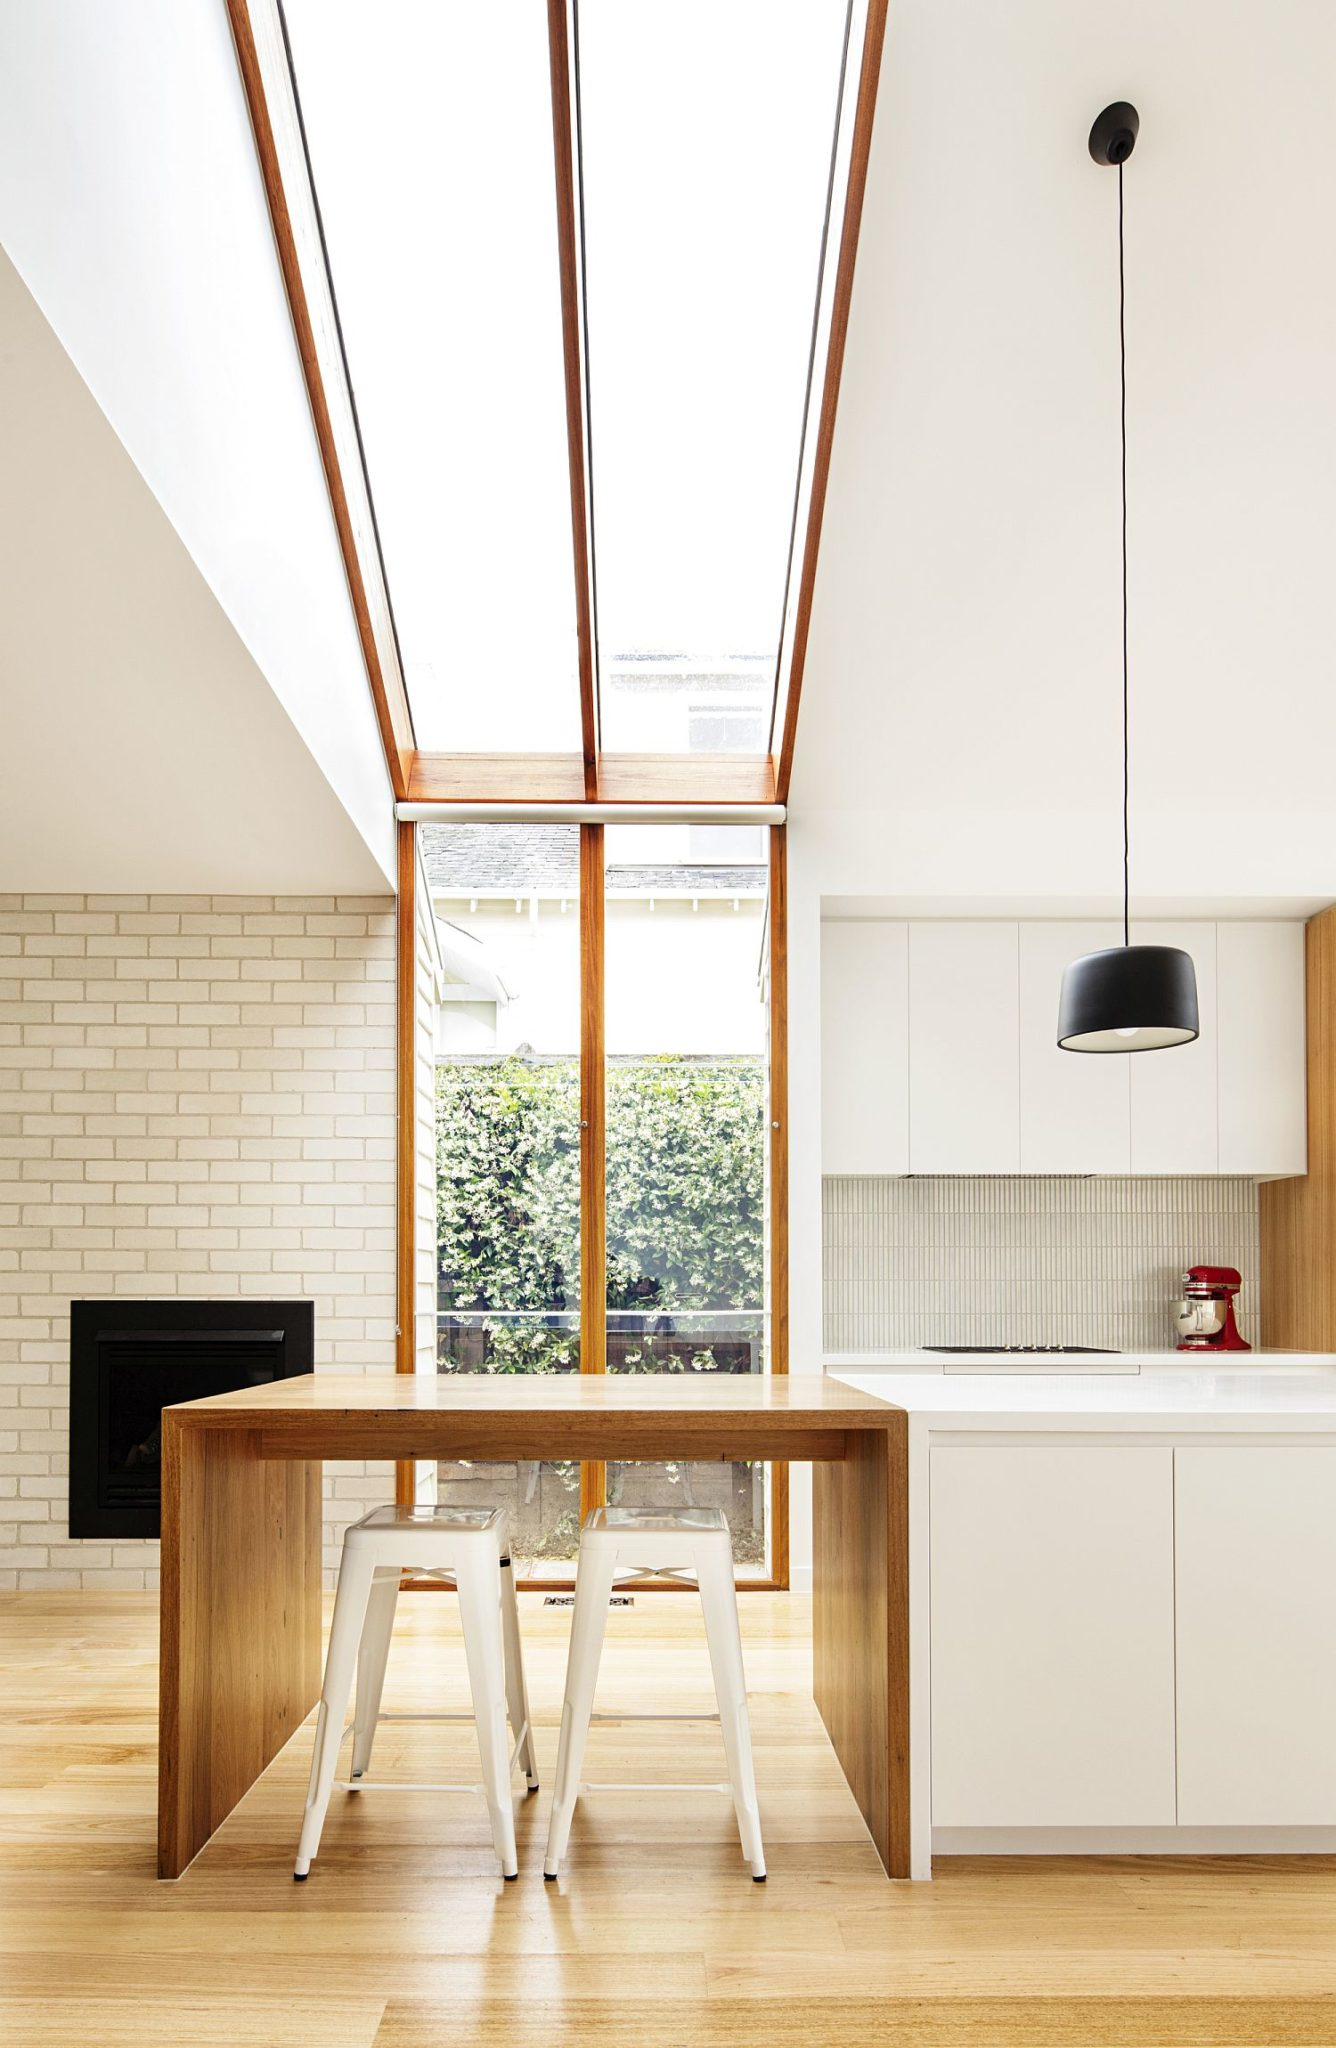 Skylights and smart windows bring ample light into the kitchen